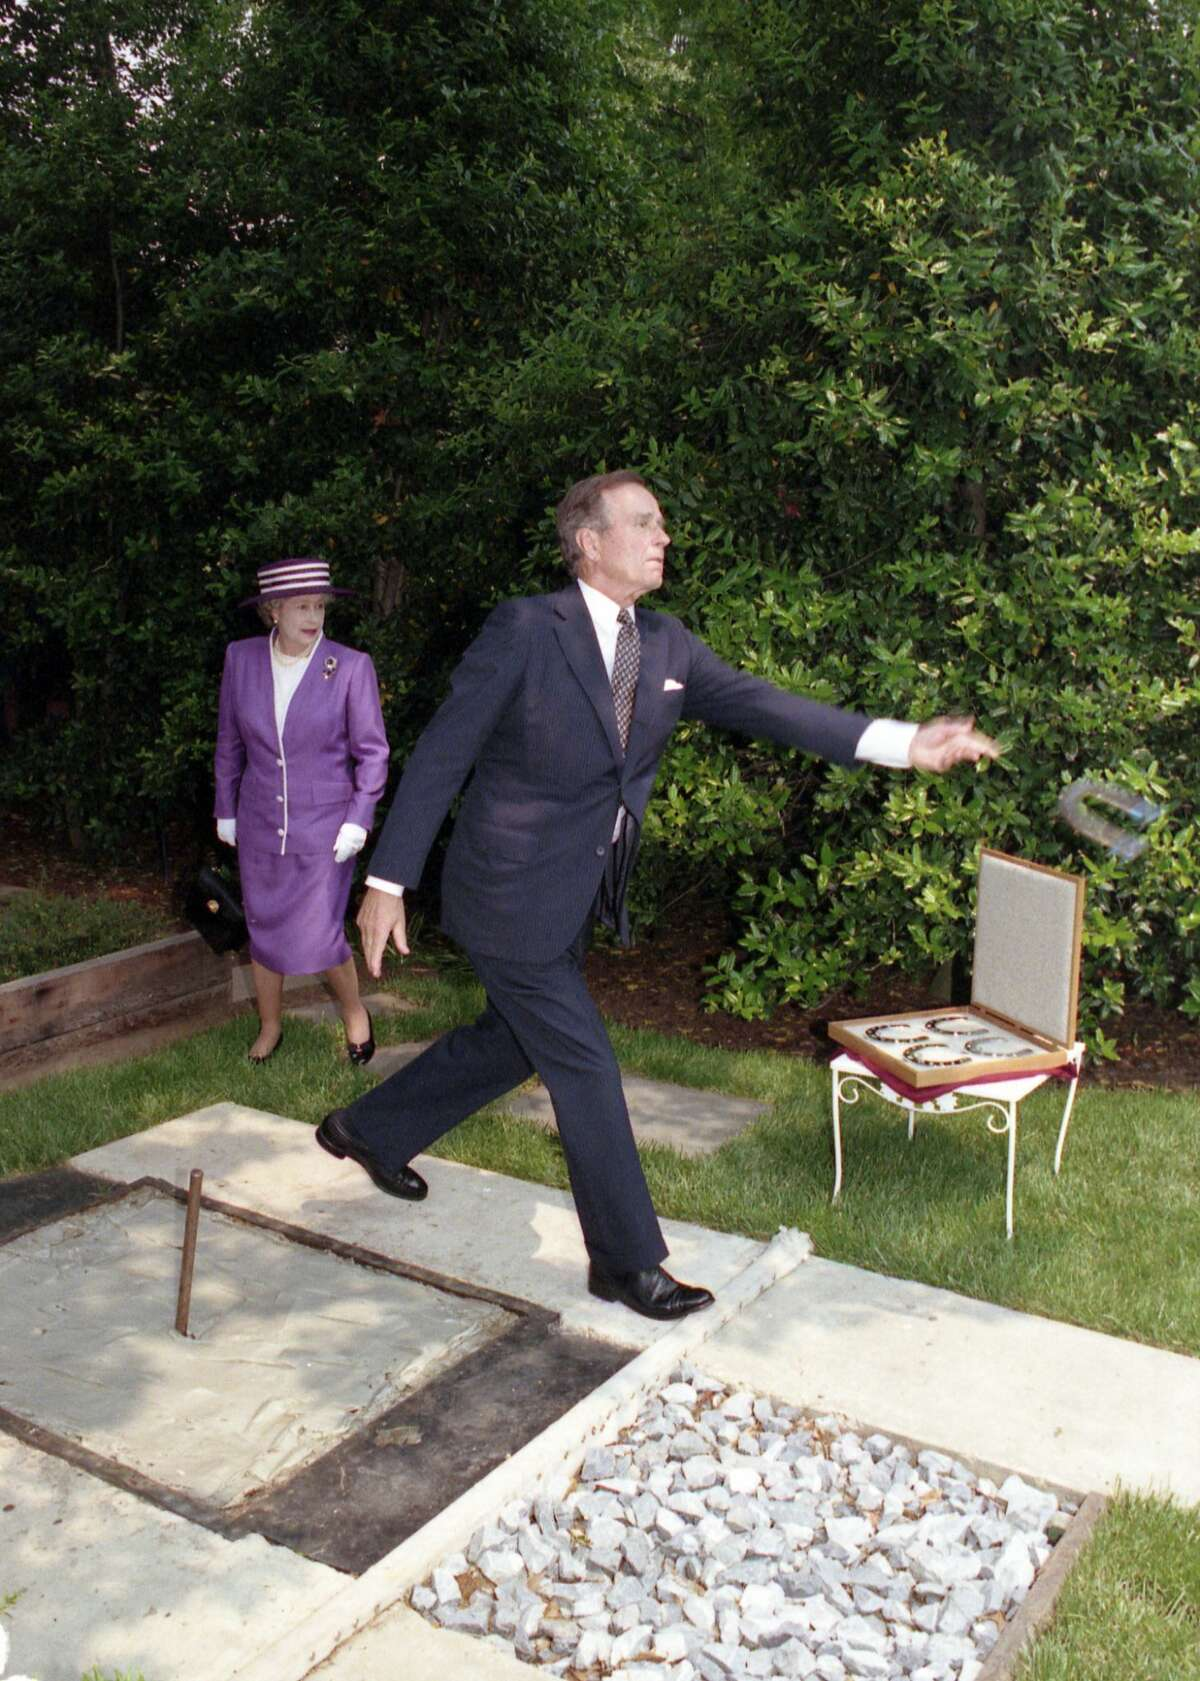 President Bush demonstrates his horseshoe pitching abilities after Queen Elizabeth of Great Britain presents him four silver horseshoes engraved